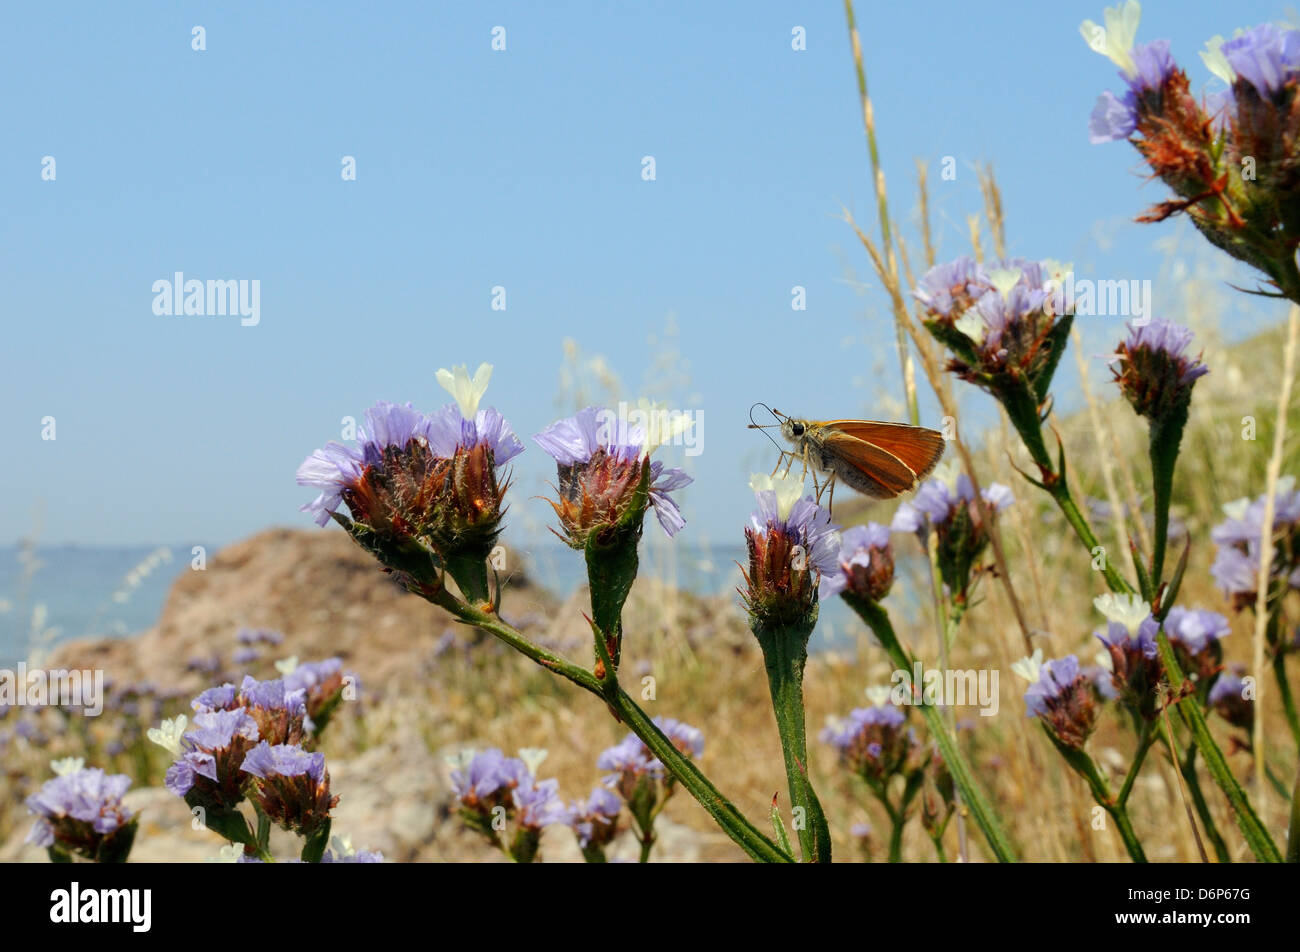 Small skipper (Thymelicus sylvestris) feeding from Winged sea lavender flower, Lesbos (Lesvos), Greek Islands, Greece - Stock Image